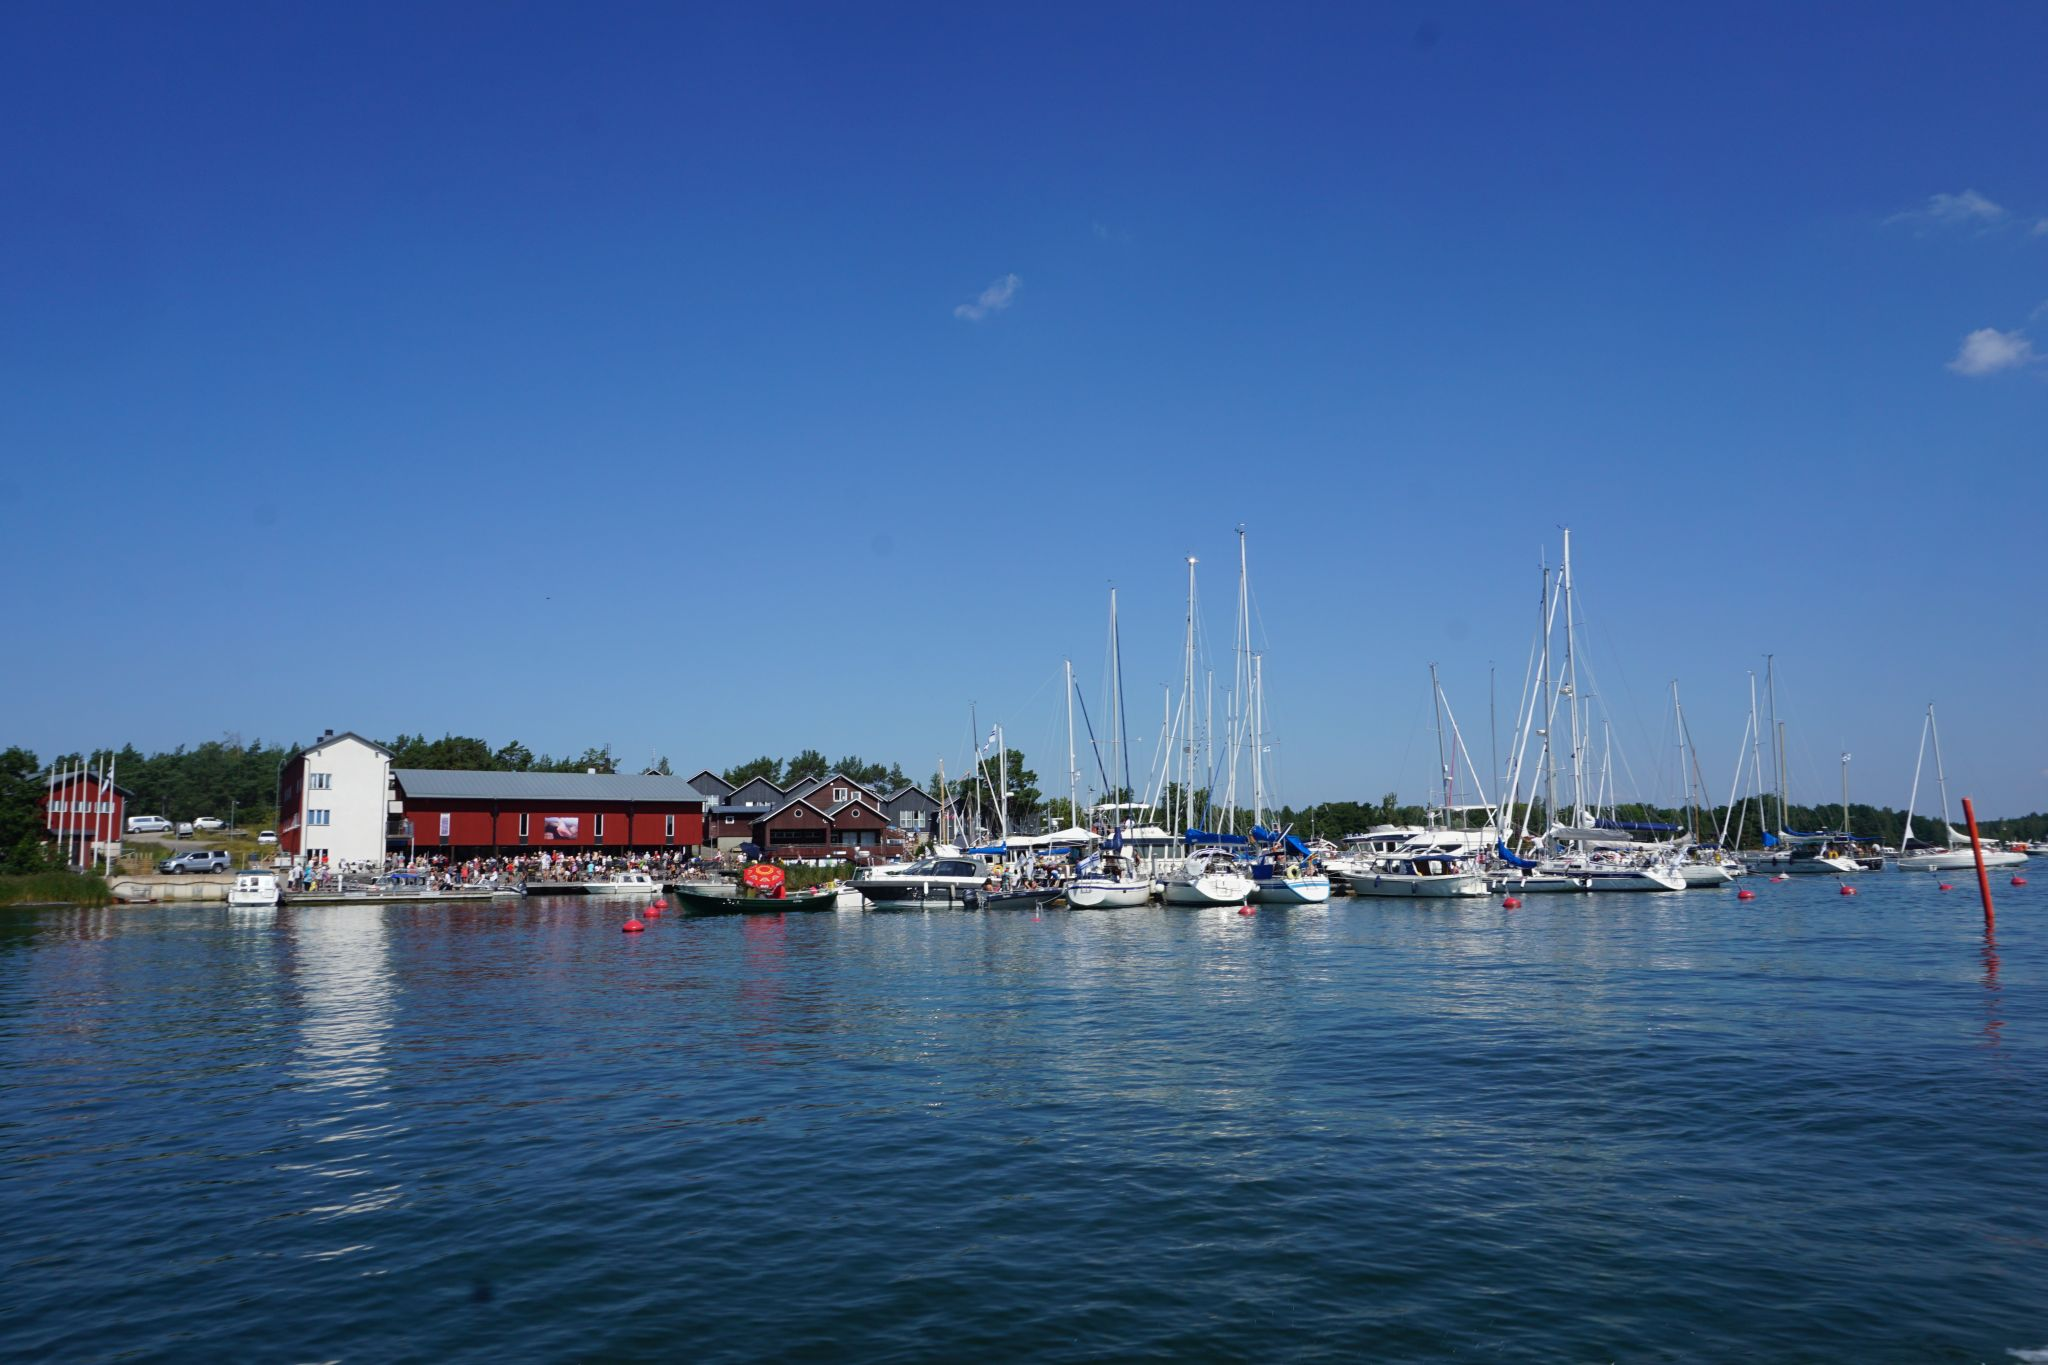 Korpo Sea Jazz and Korpo Runt make for a busy day at Korpoström harbour